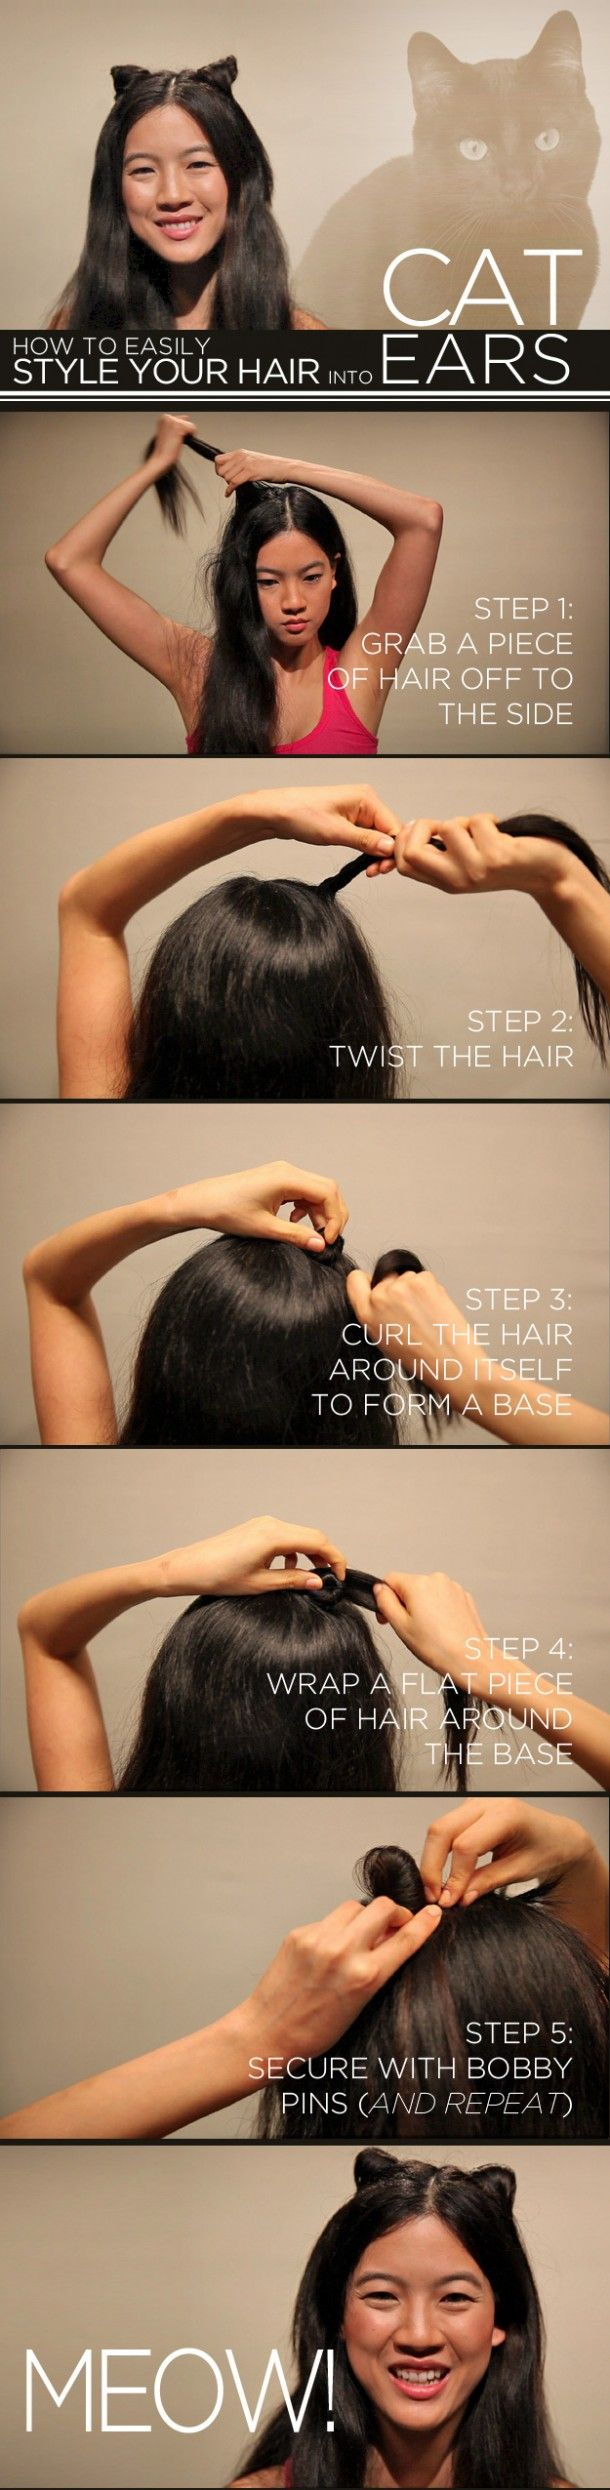 364 best fun hair images on pinterest   hairstyles, hair and braids